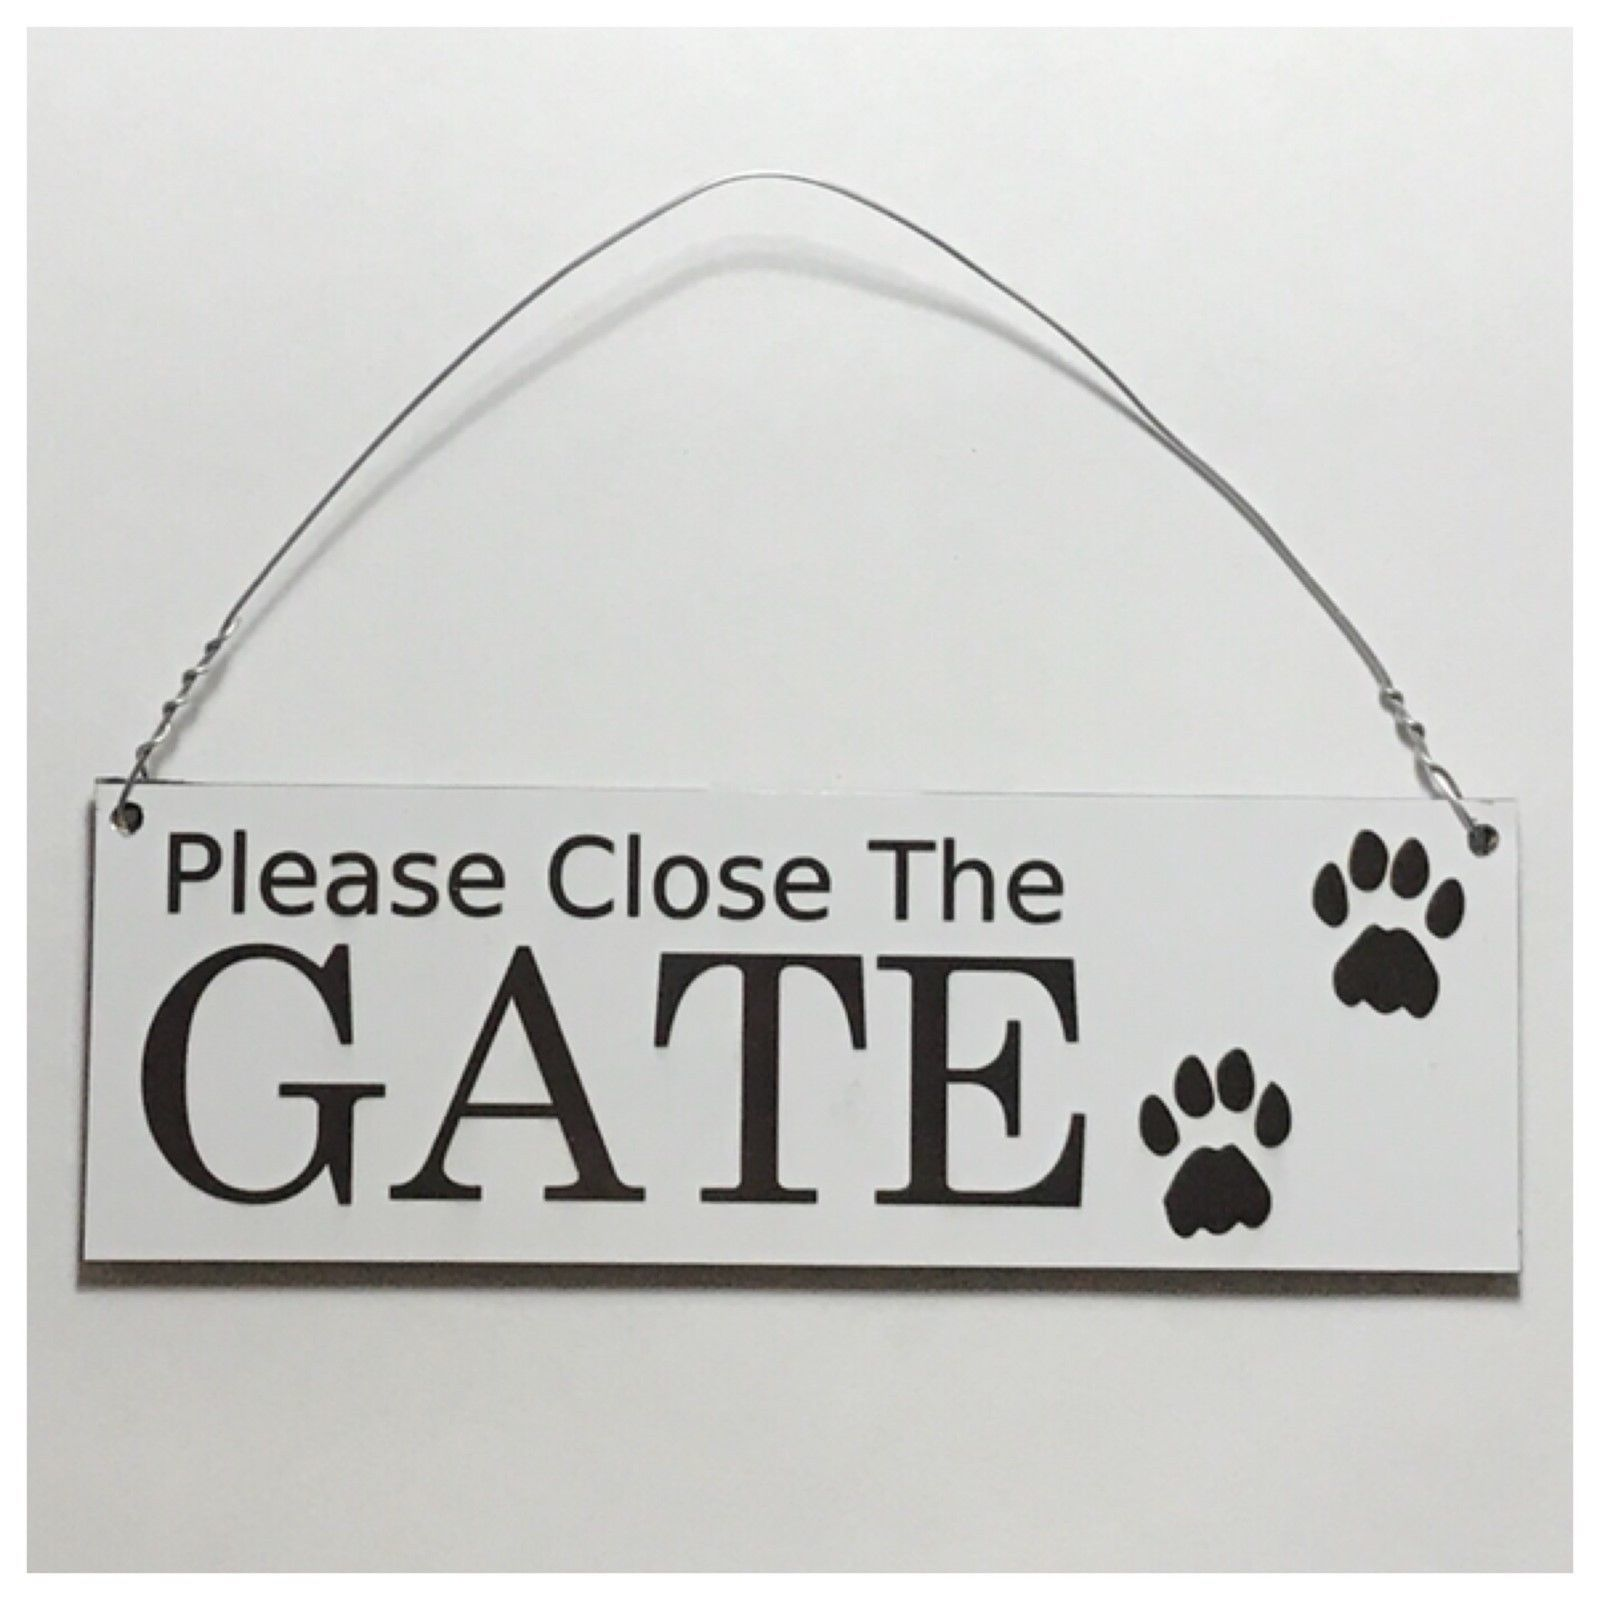 Please Close The Gate with Paws Sign - The Renmy Store